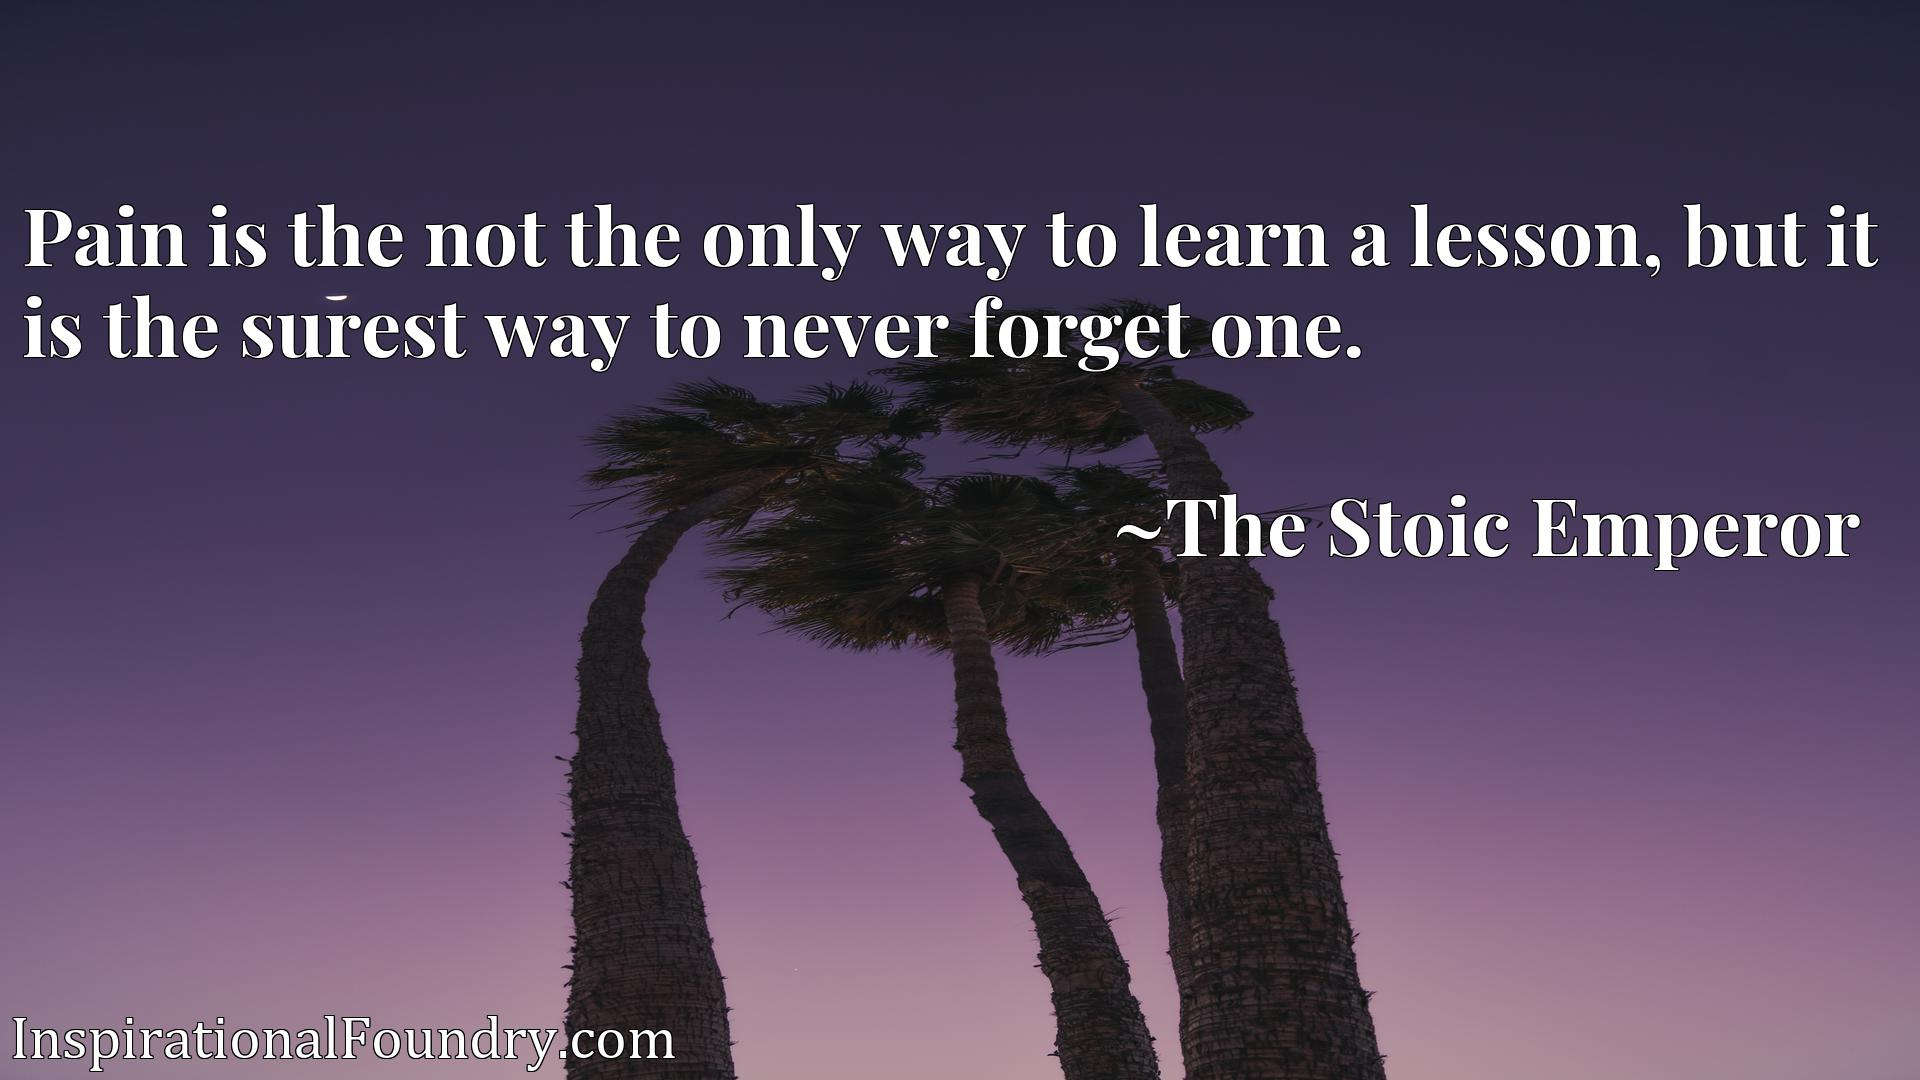 Pain is the not the only way to learn a lesson, but it is the surest way to never forget one.